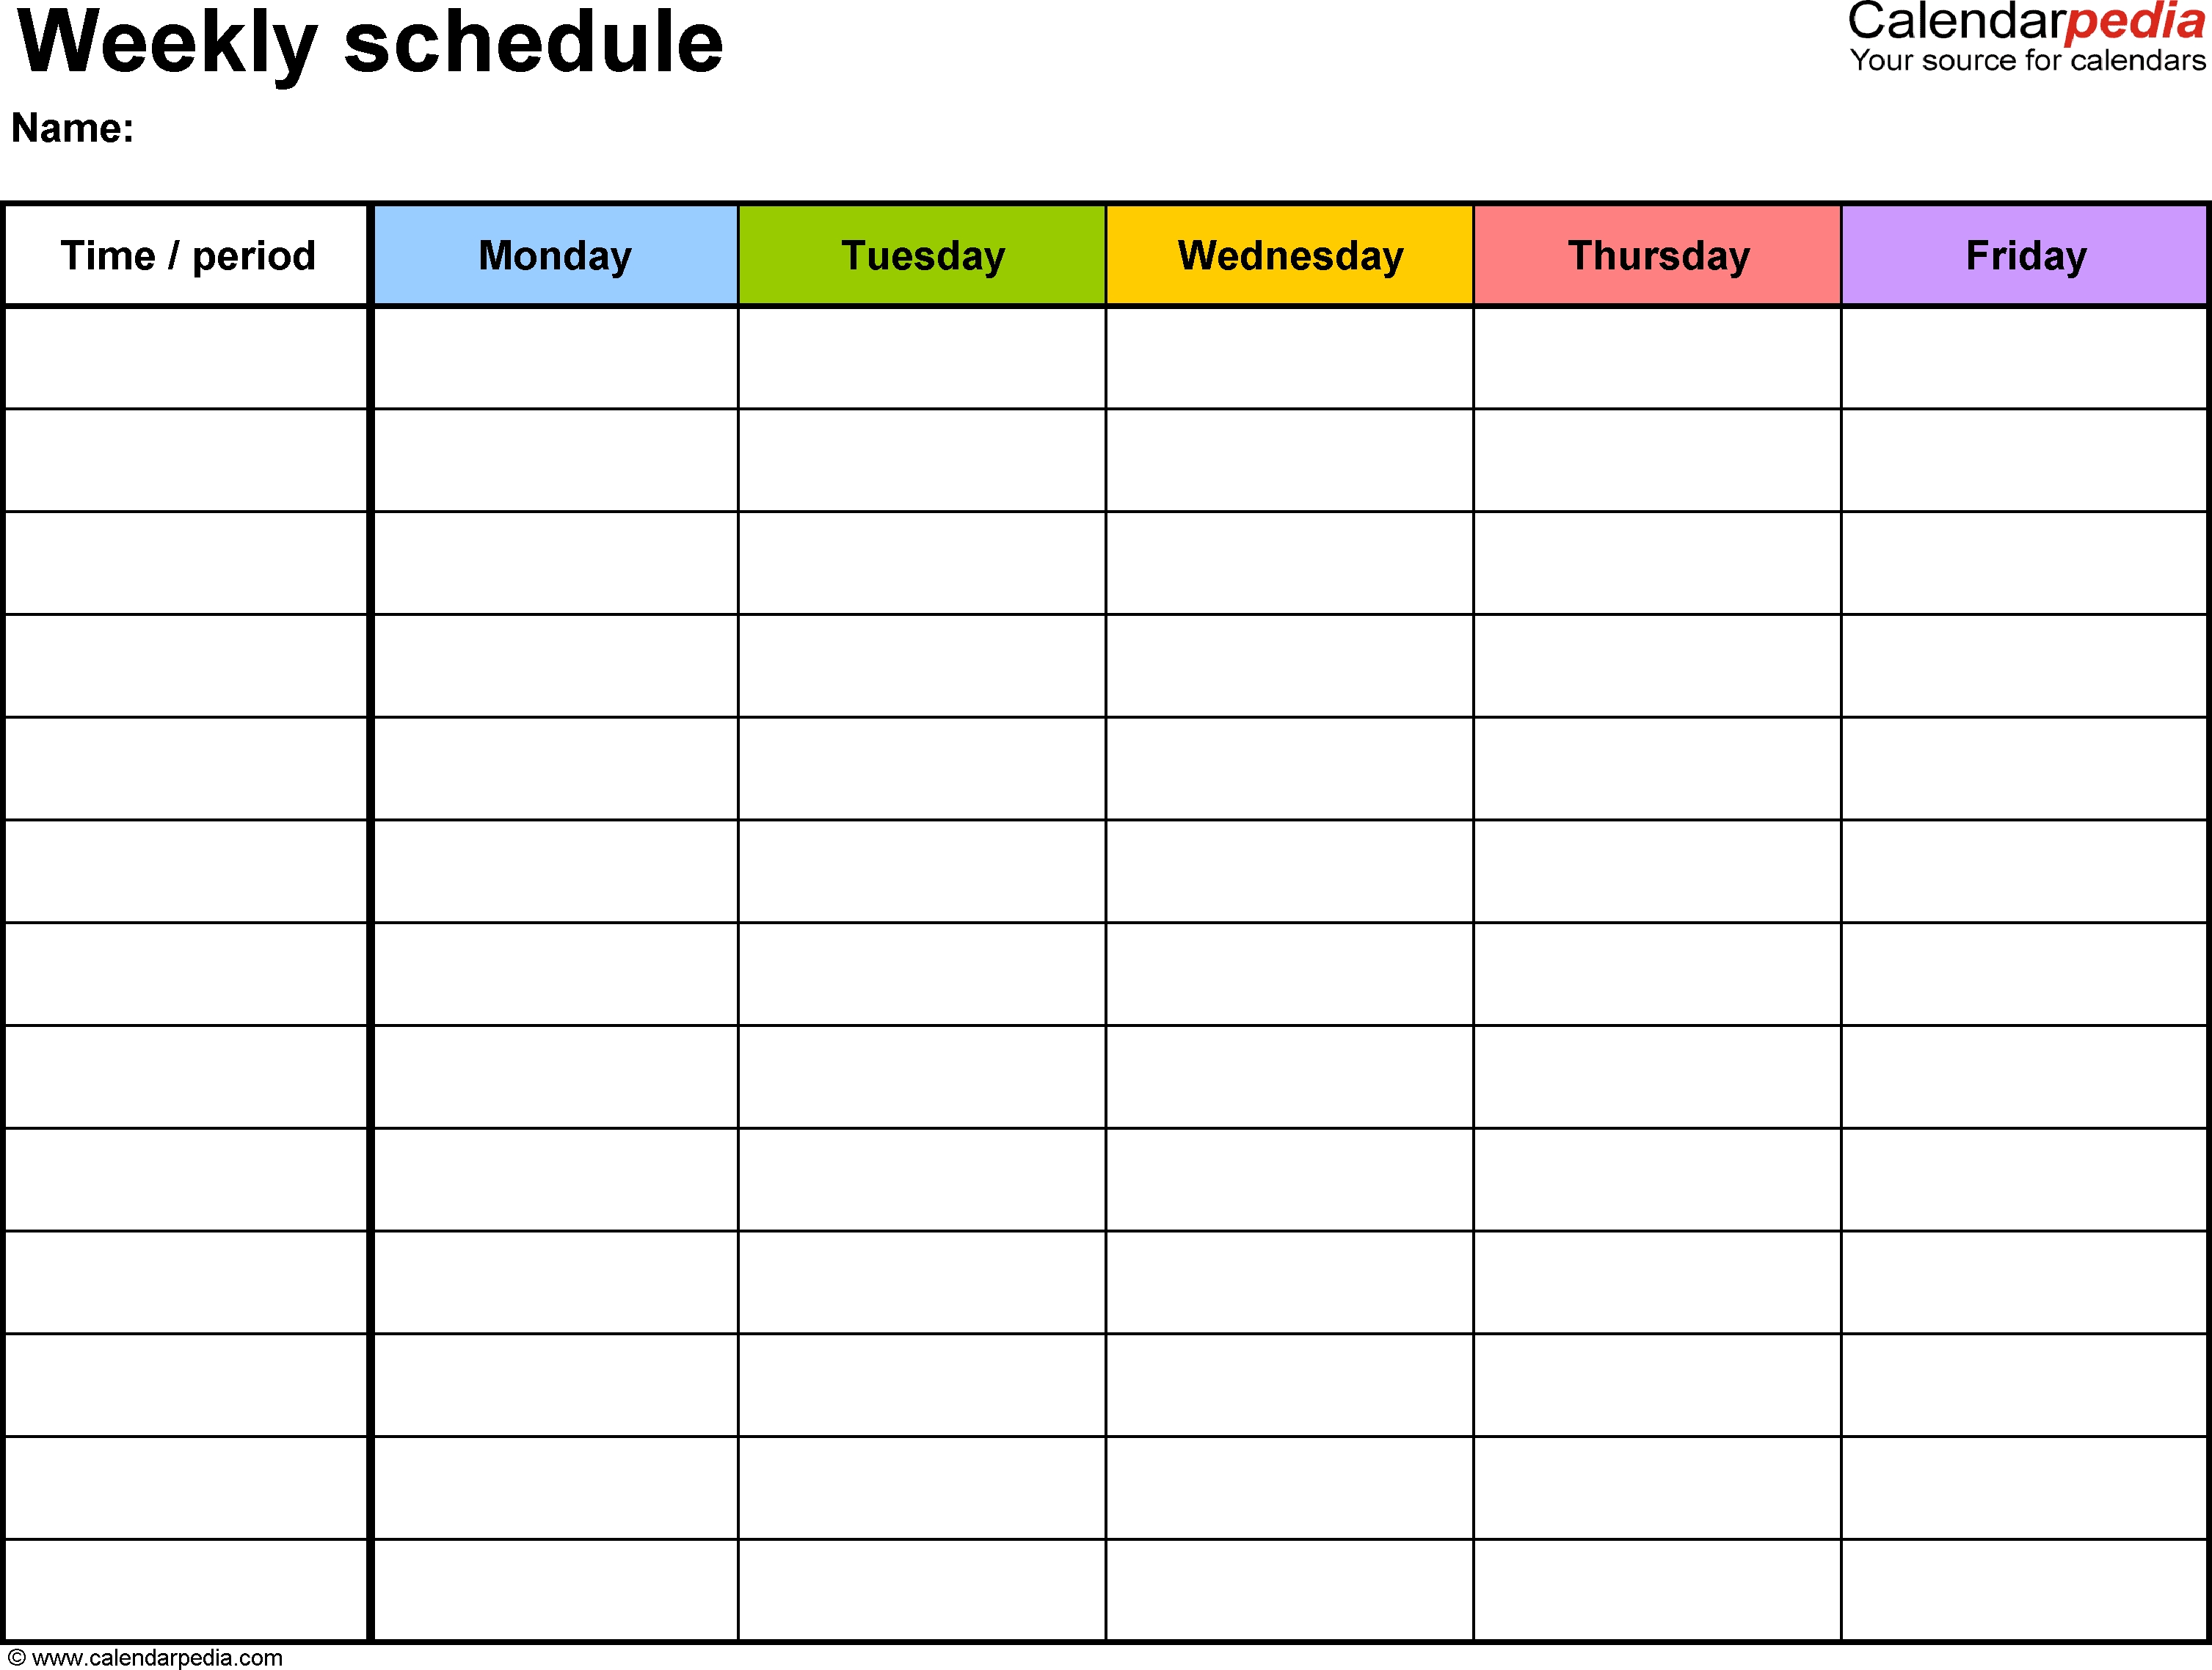 Free Weekly Schedule Templates For Word - 18 Templates intended for Free Blank Printable Weekly Calendar Template